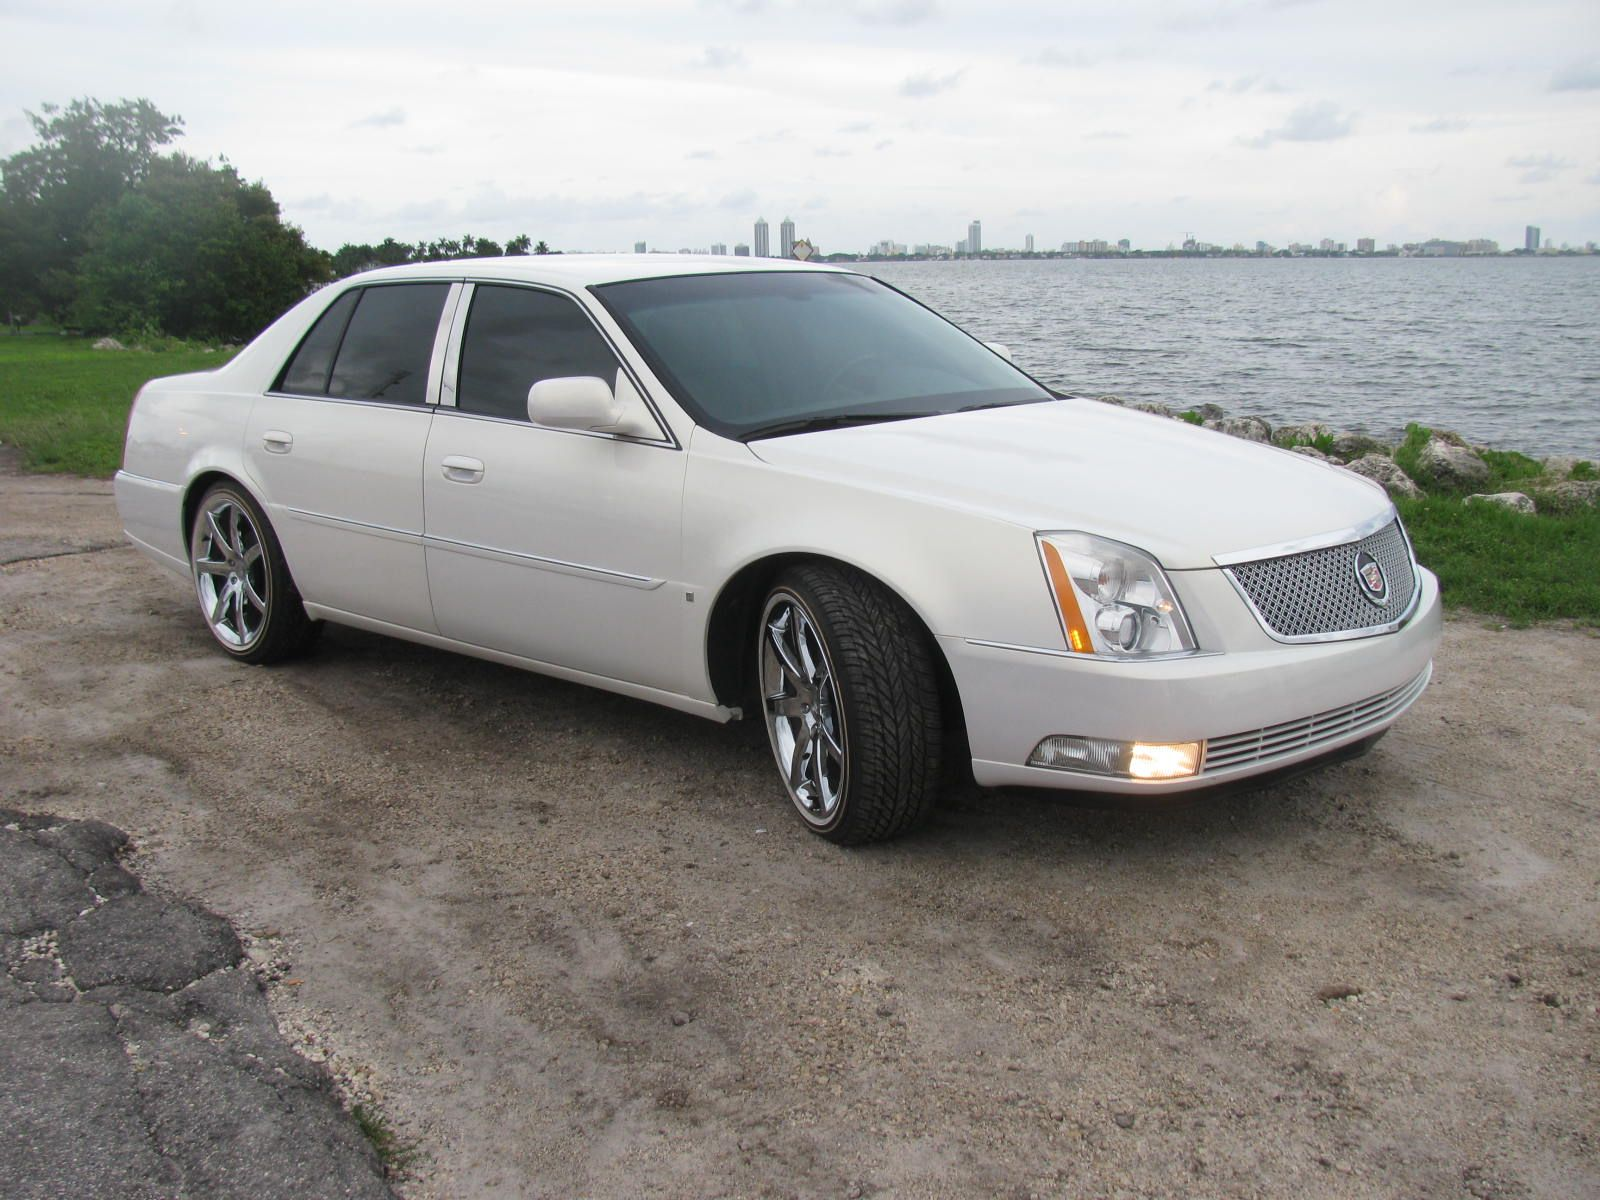 for htm sale iowa vin in used davenport cadillac dts